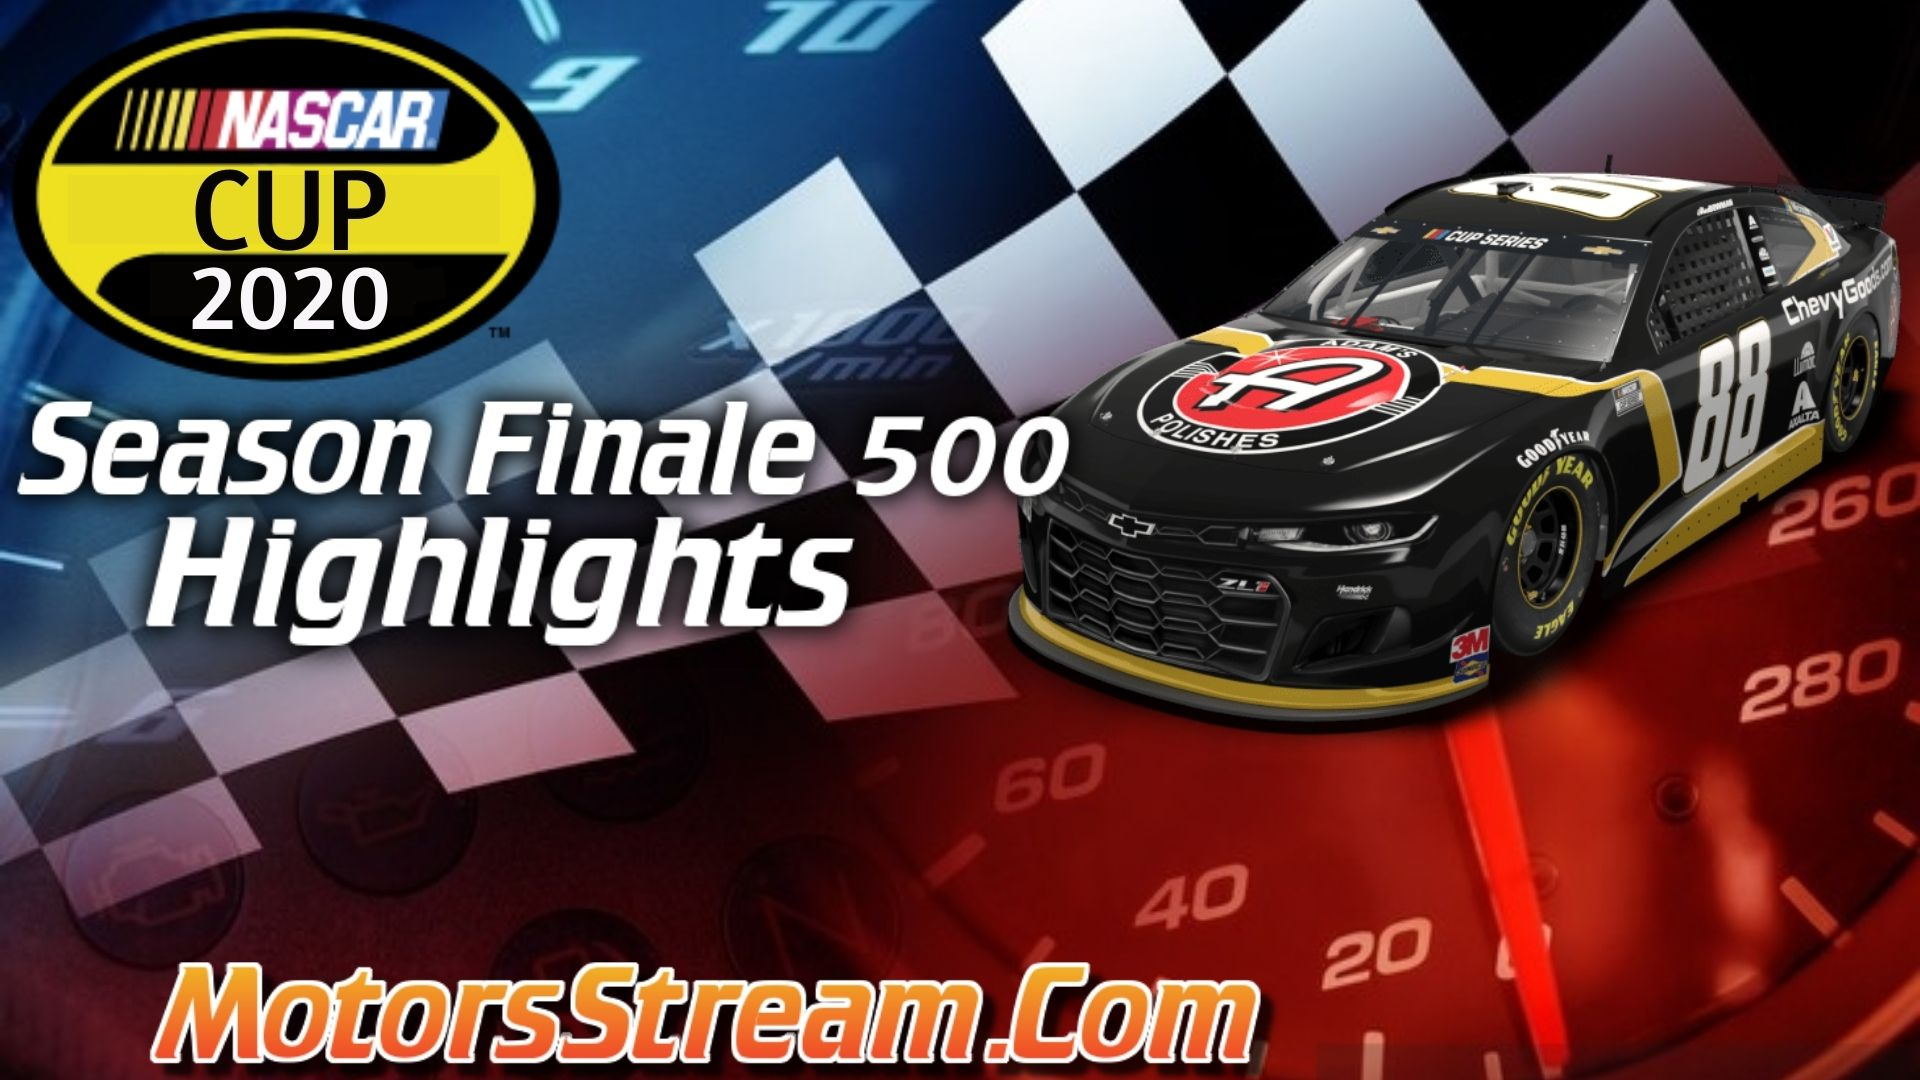 Season Finale 500 Highlights 2020 NASCAR Cup Series